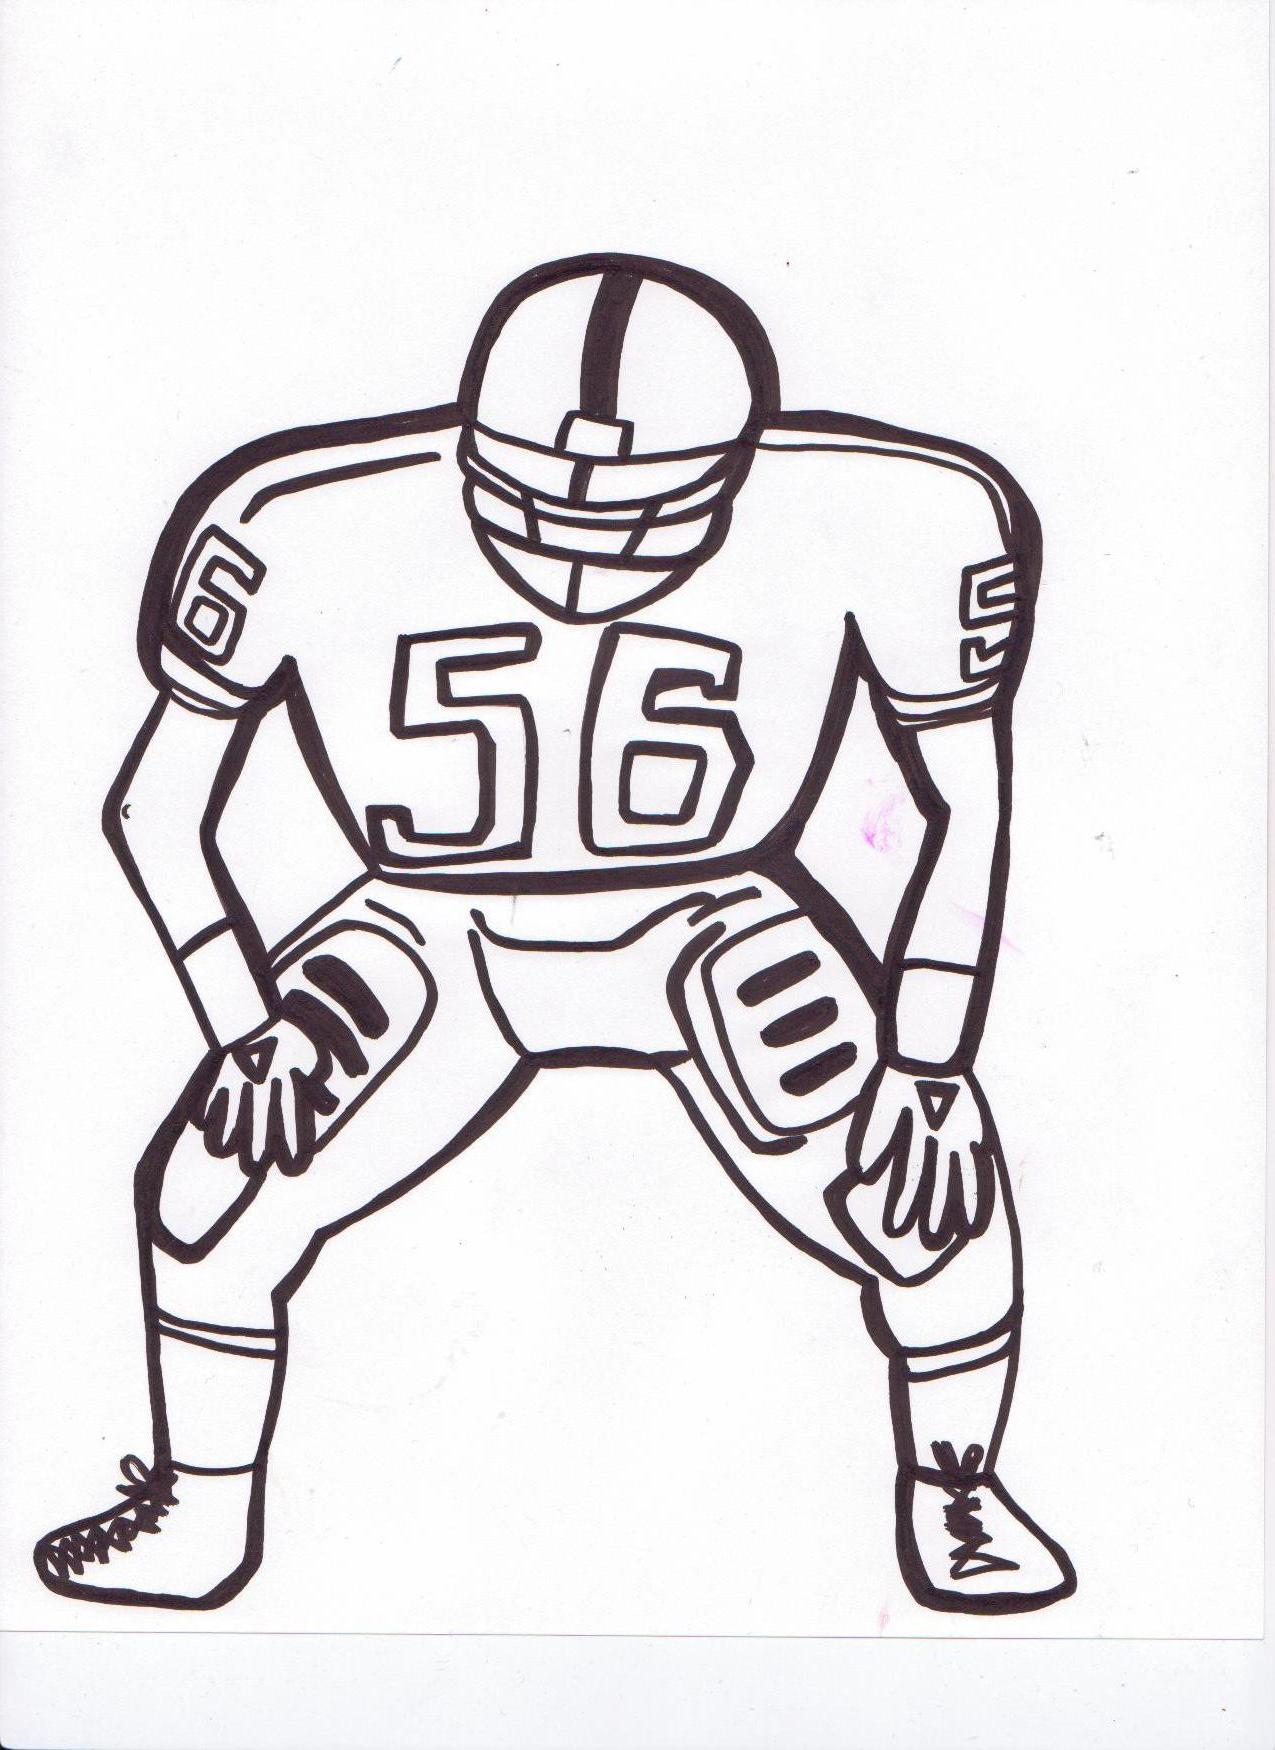 1275x1750 Football Player Outline Az Coloring Pages. Pin Drawn Football Line